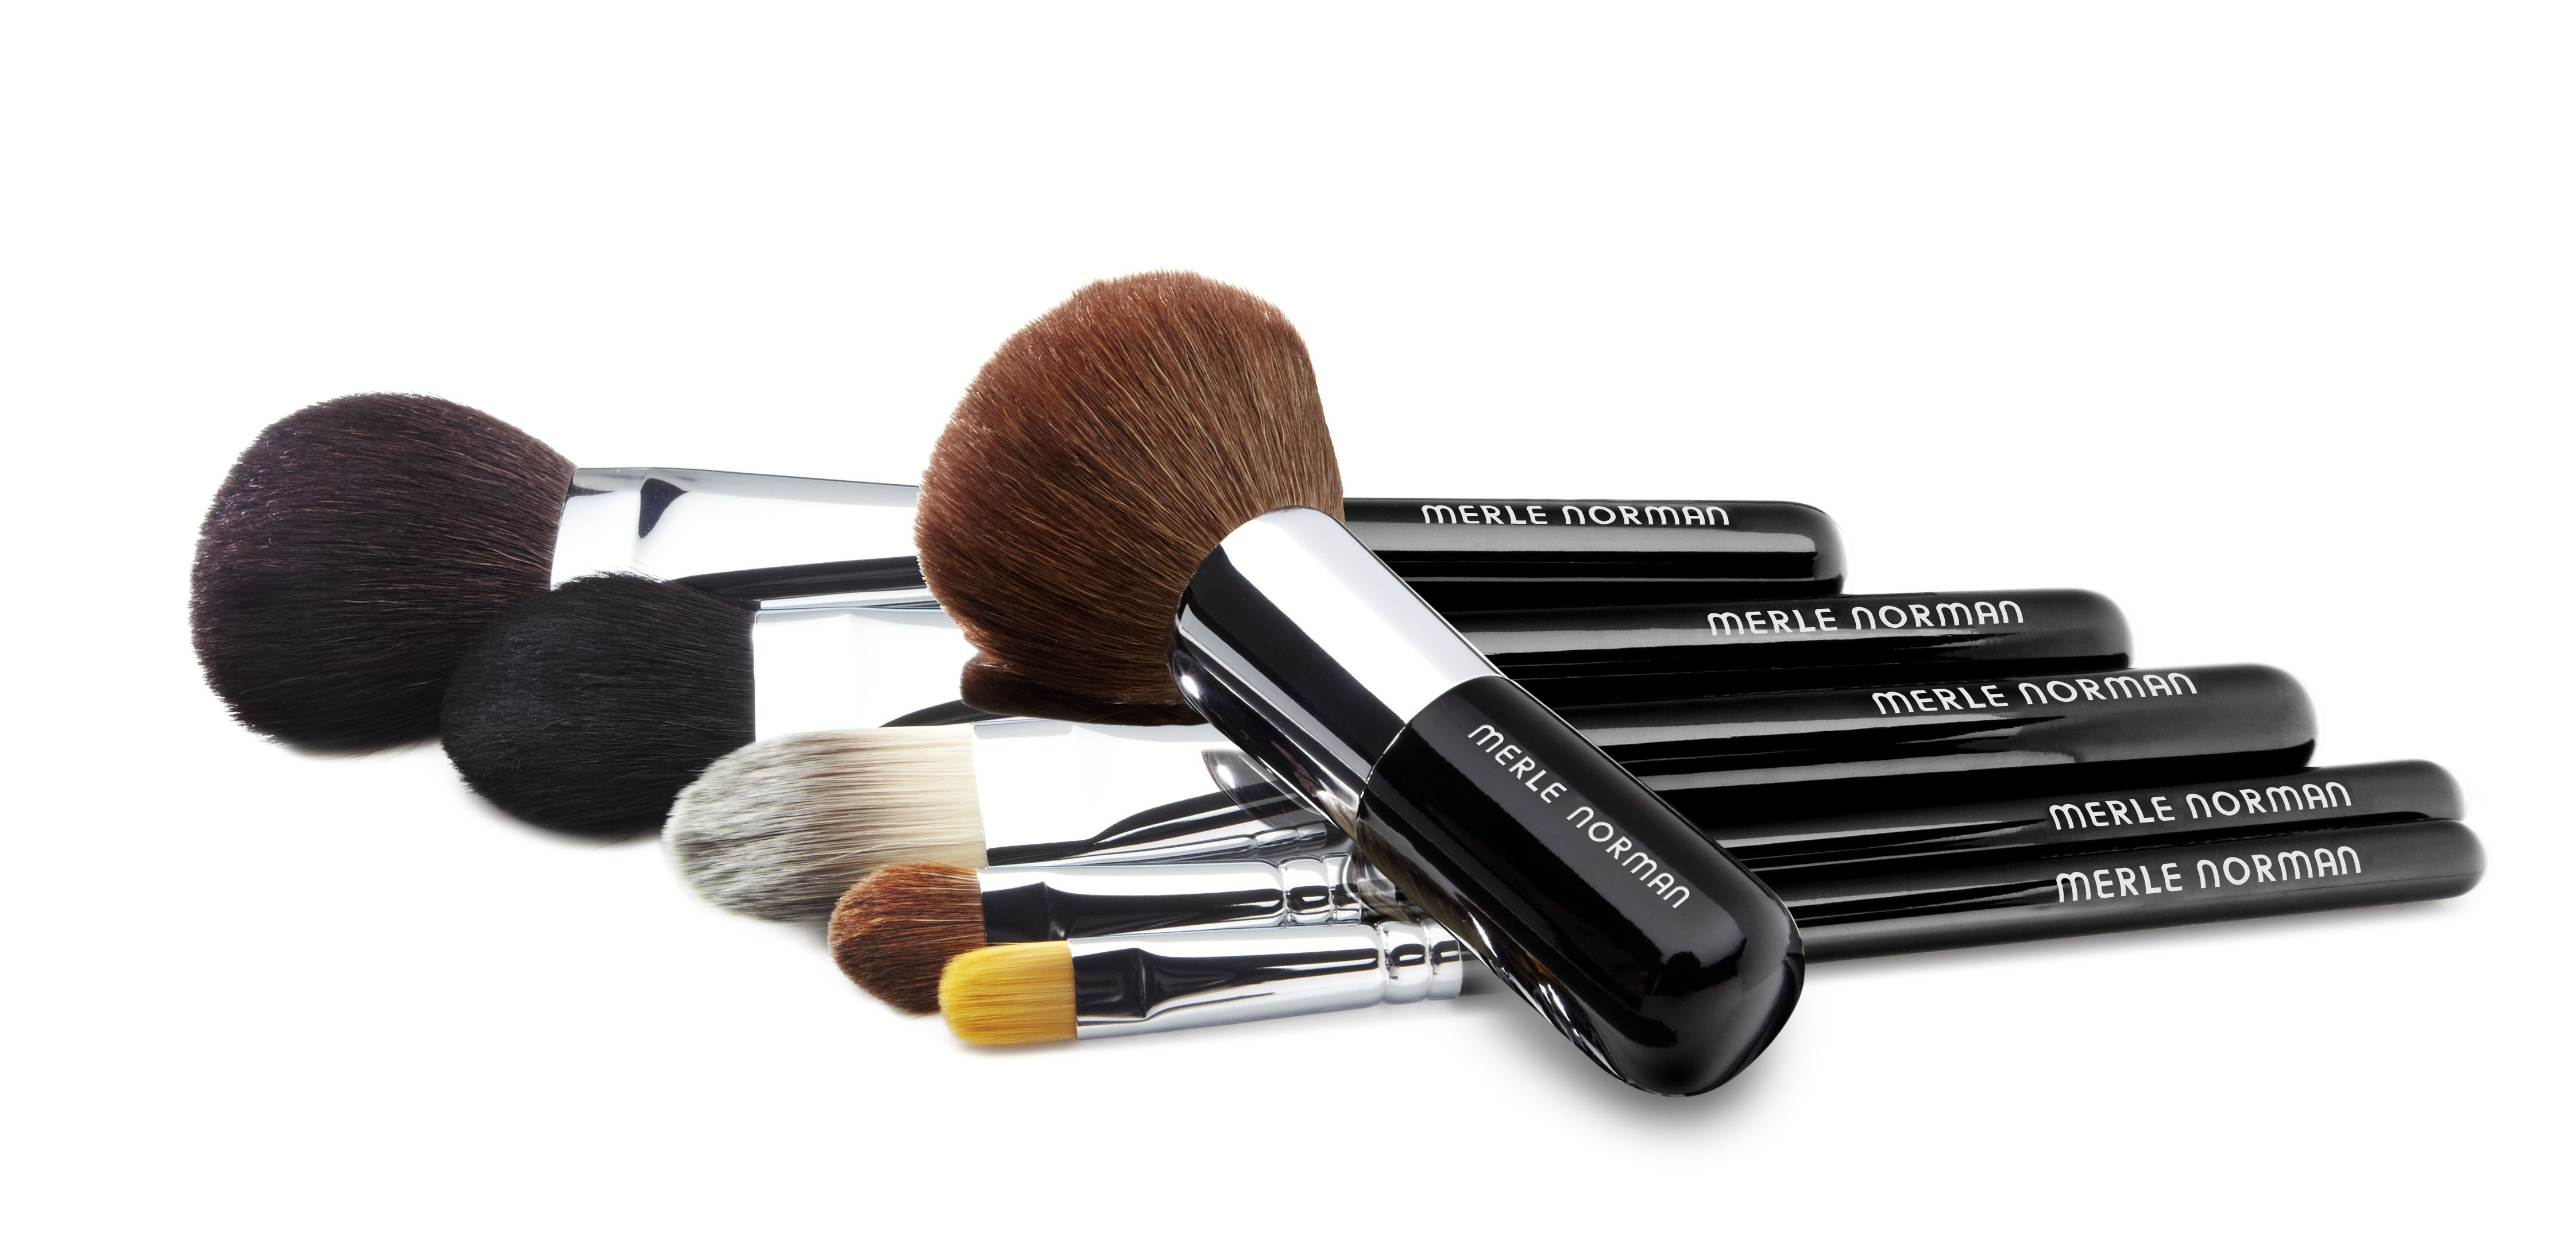 Merle Norman Makeup Artistry Brush Collection With Images